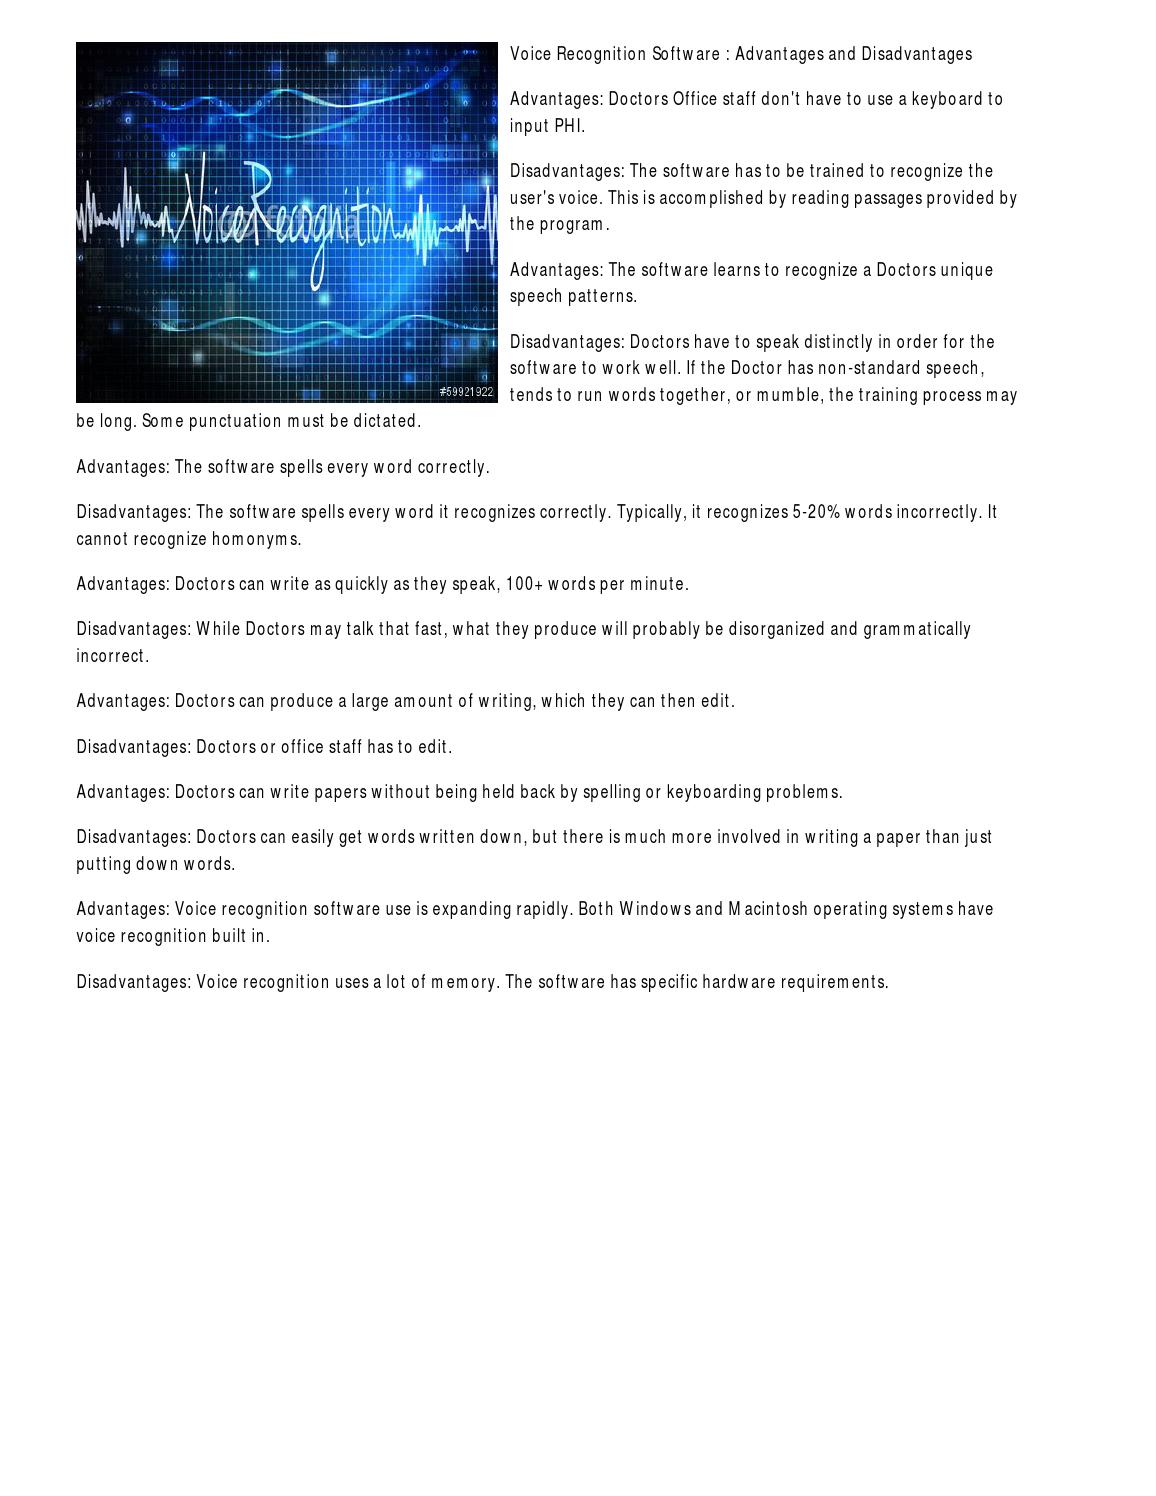 Voice Recognition Software : Advantages and Disadvantages by Jessica